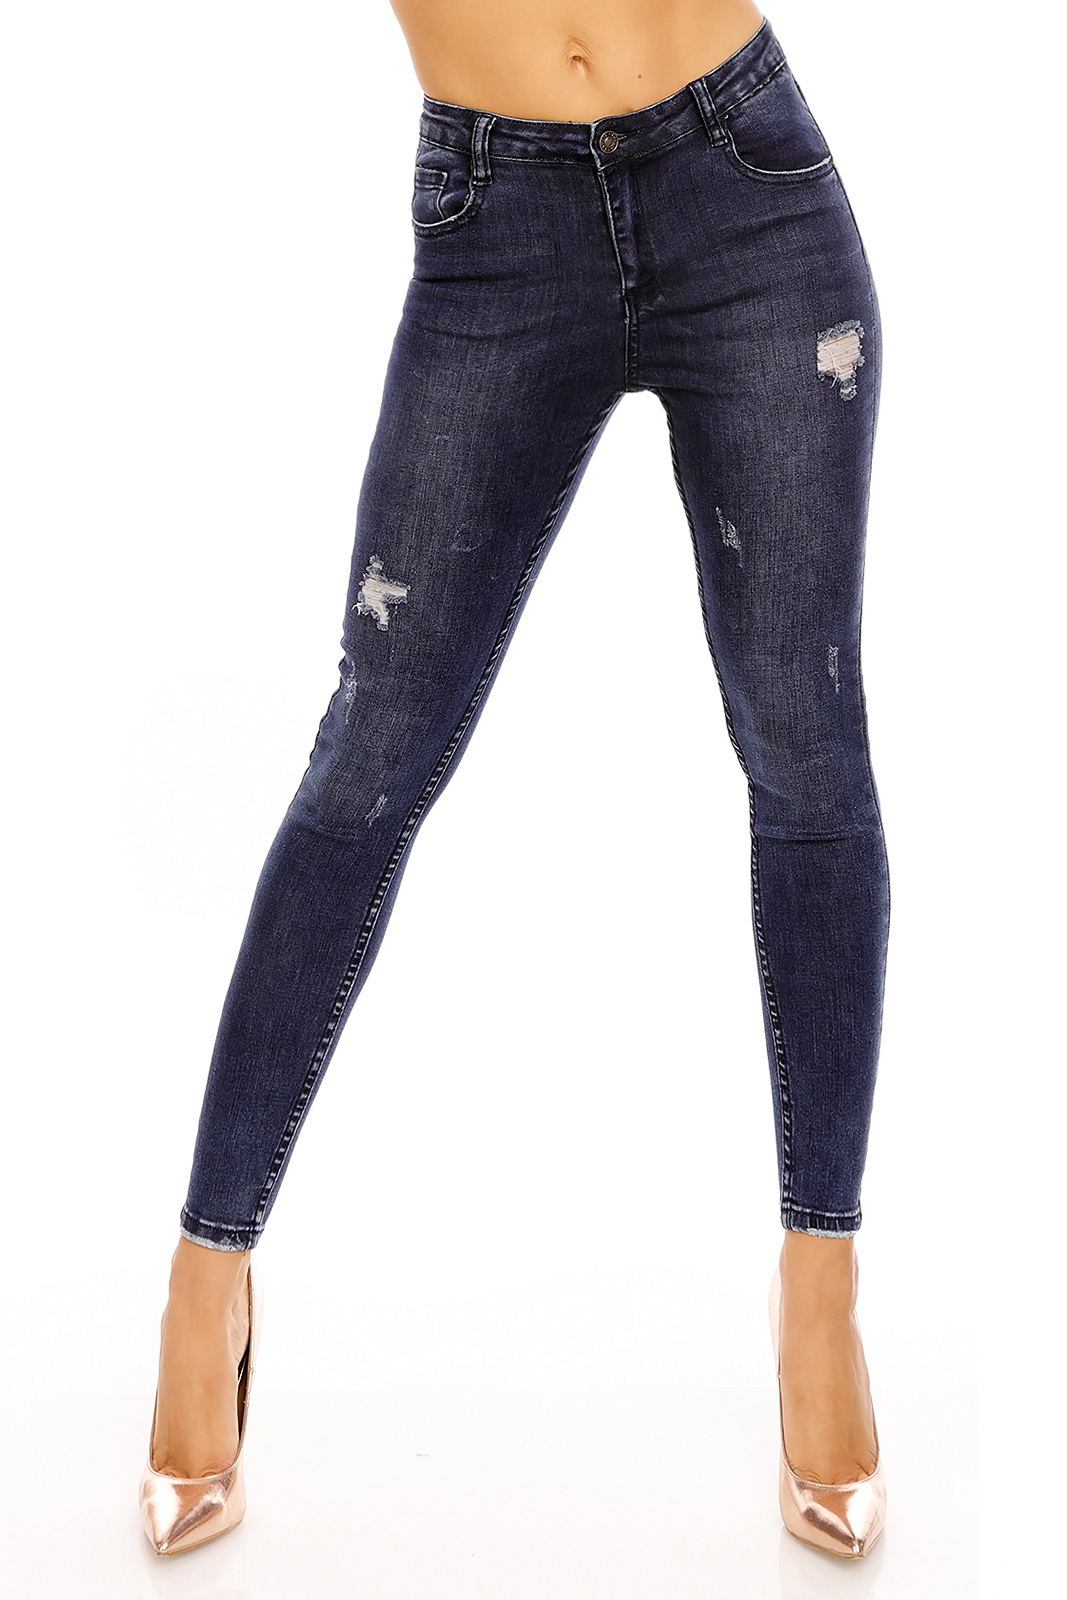 Pants Jeans Laulia 4D742 Dark Blue